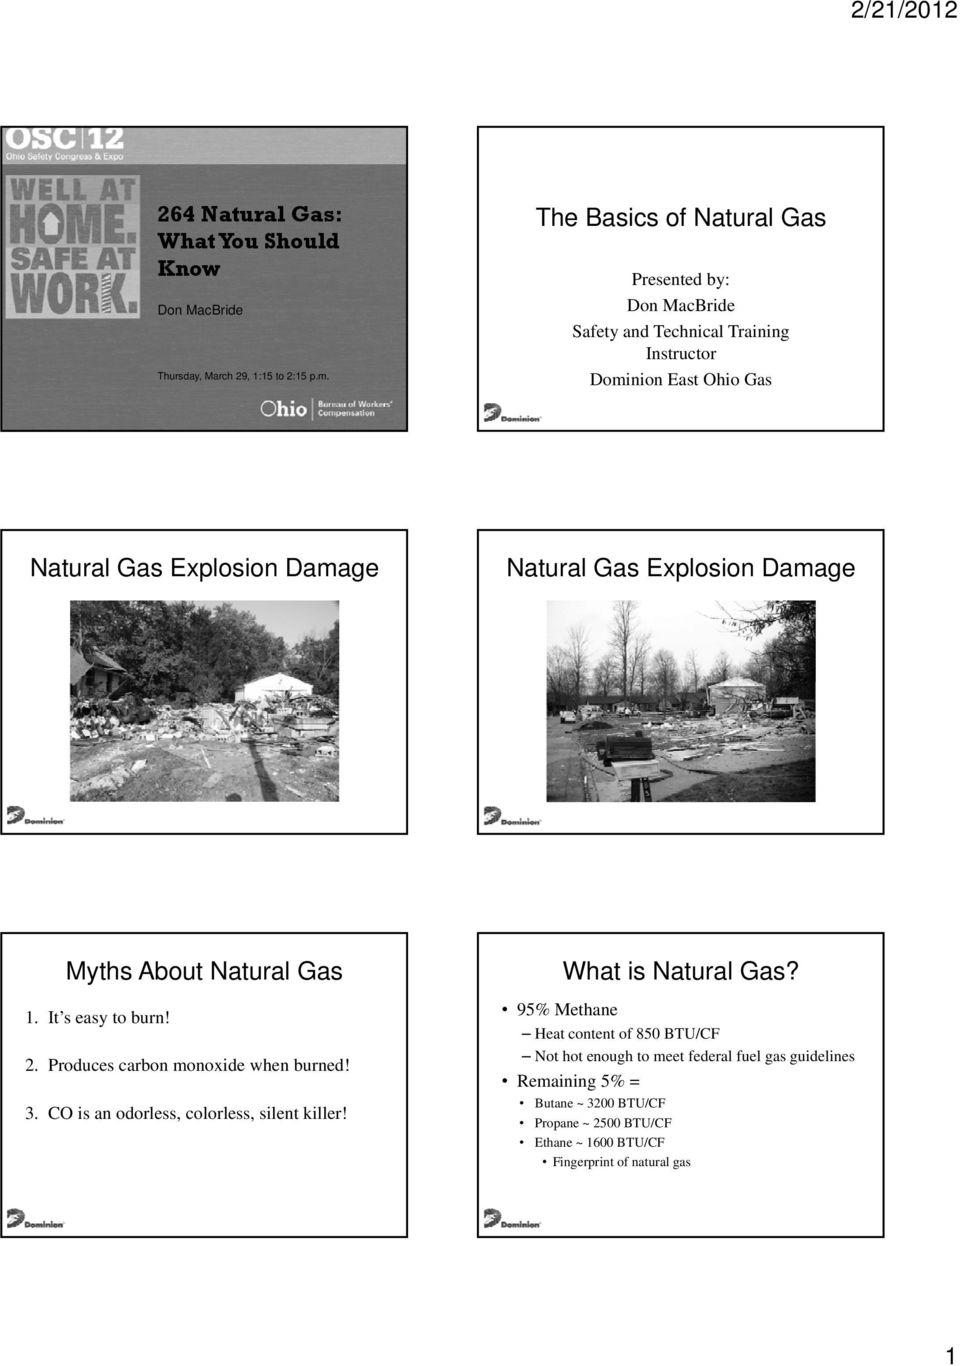 Explosion Damage Natural Gas Explosion Damage Myths About Natural Gas 1. It s easy to burn! 2. Produces carbon monoxide when burned! 3.